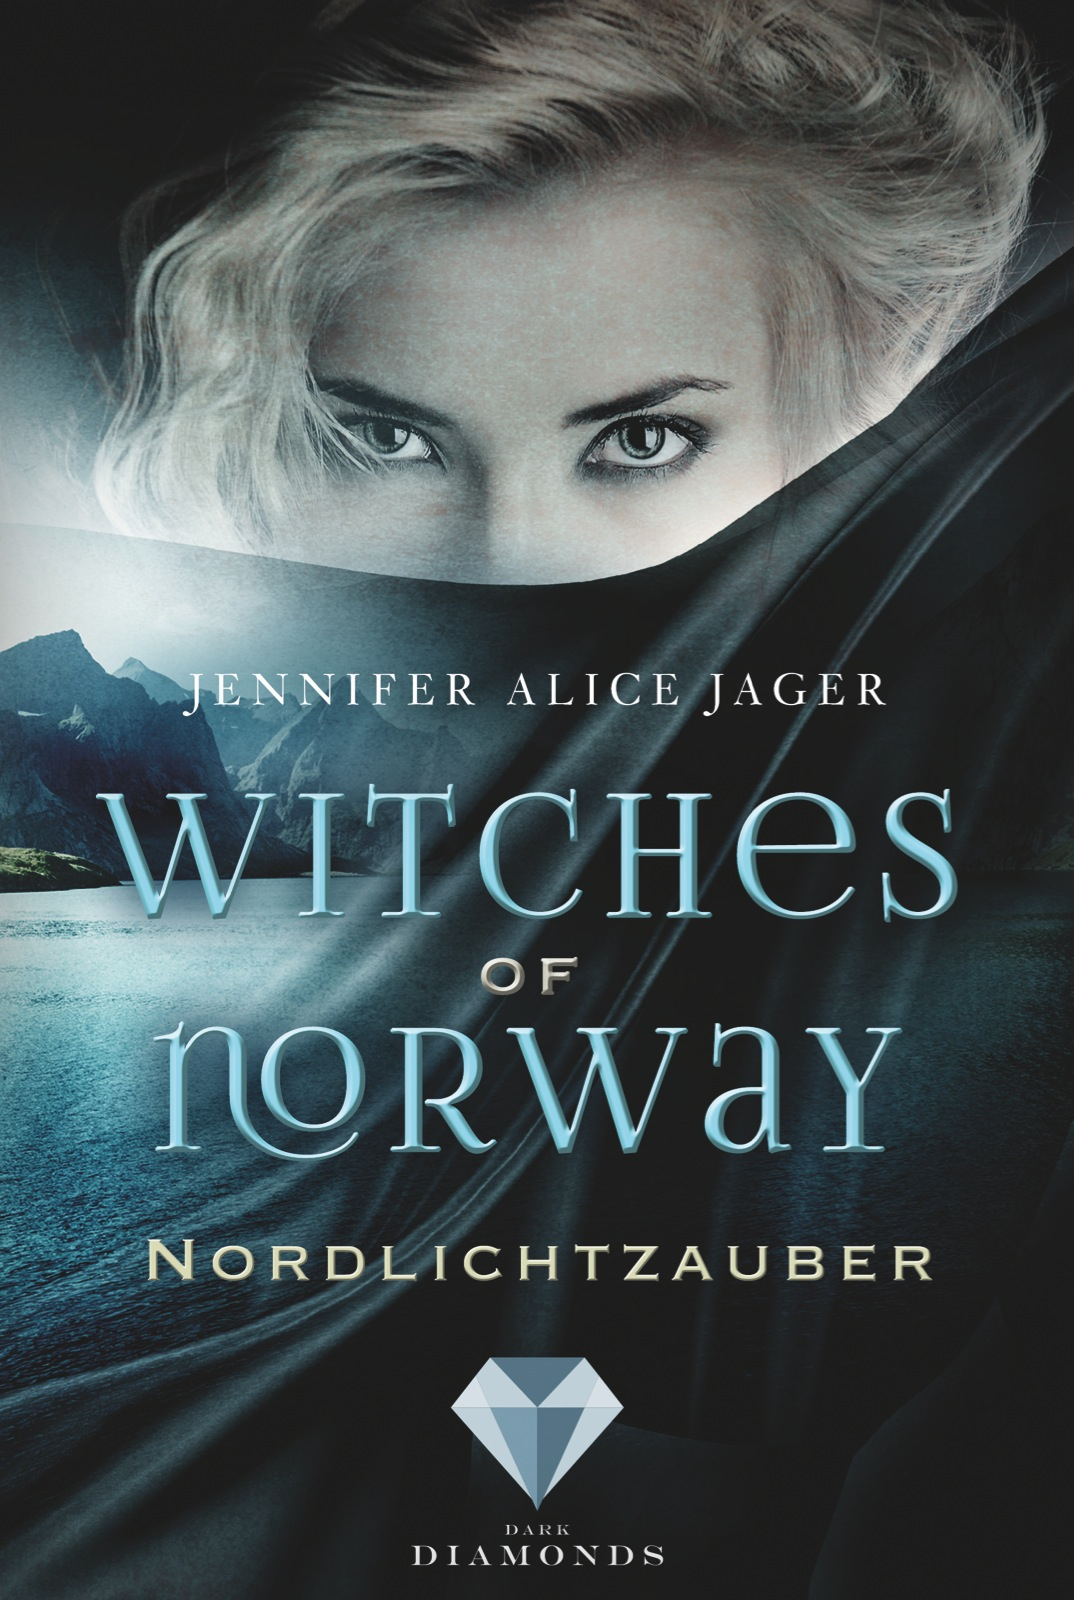 {Rezension} Witches of Norway – Nordlichtzauber (Jennifer Alice Jager)